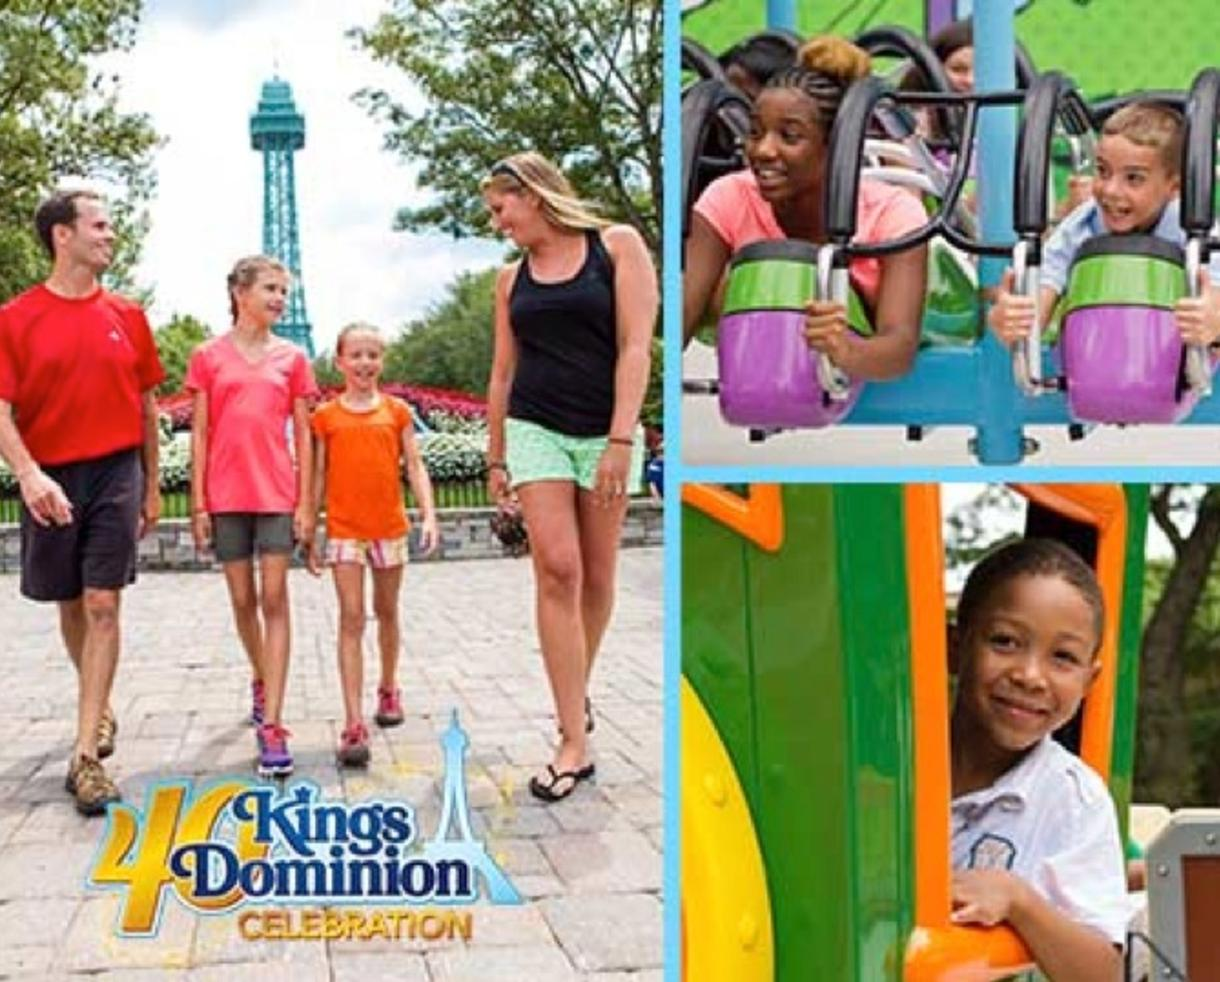 Deal Details. Play like a kid and pay like one too! Grab your family and head to Kings Dominion for a fun-filled day of thrills, chills, and surprises! With acres of rides, shows, and attractions, there is something for everyone.